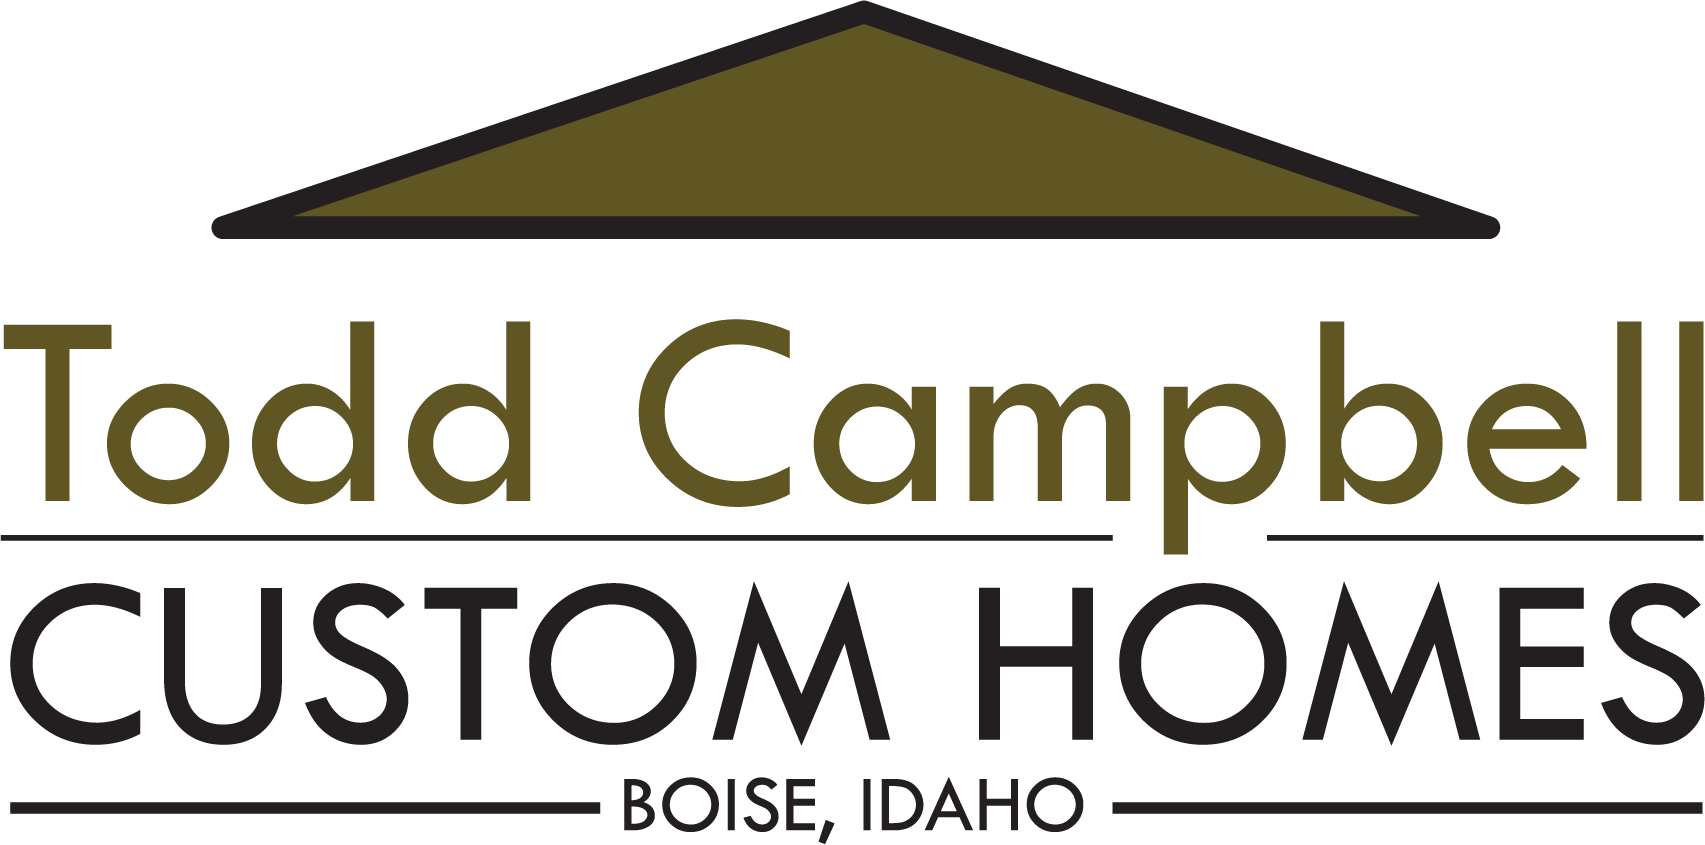 ToddCampbell-LOGO-FINAL.png